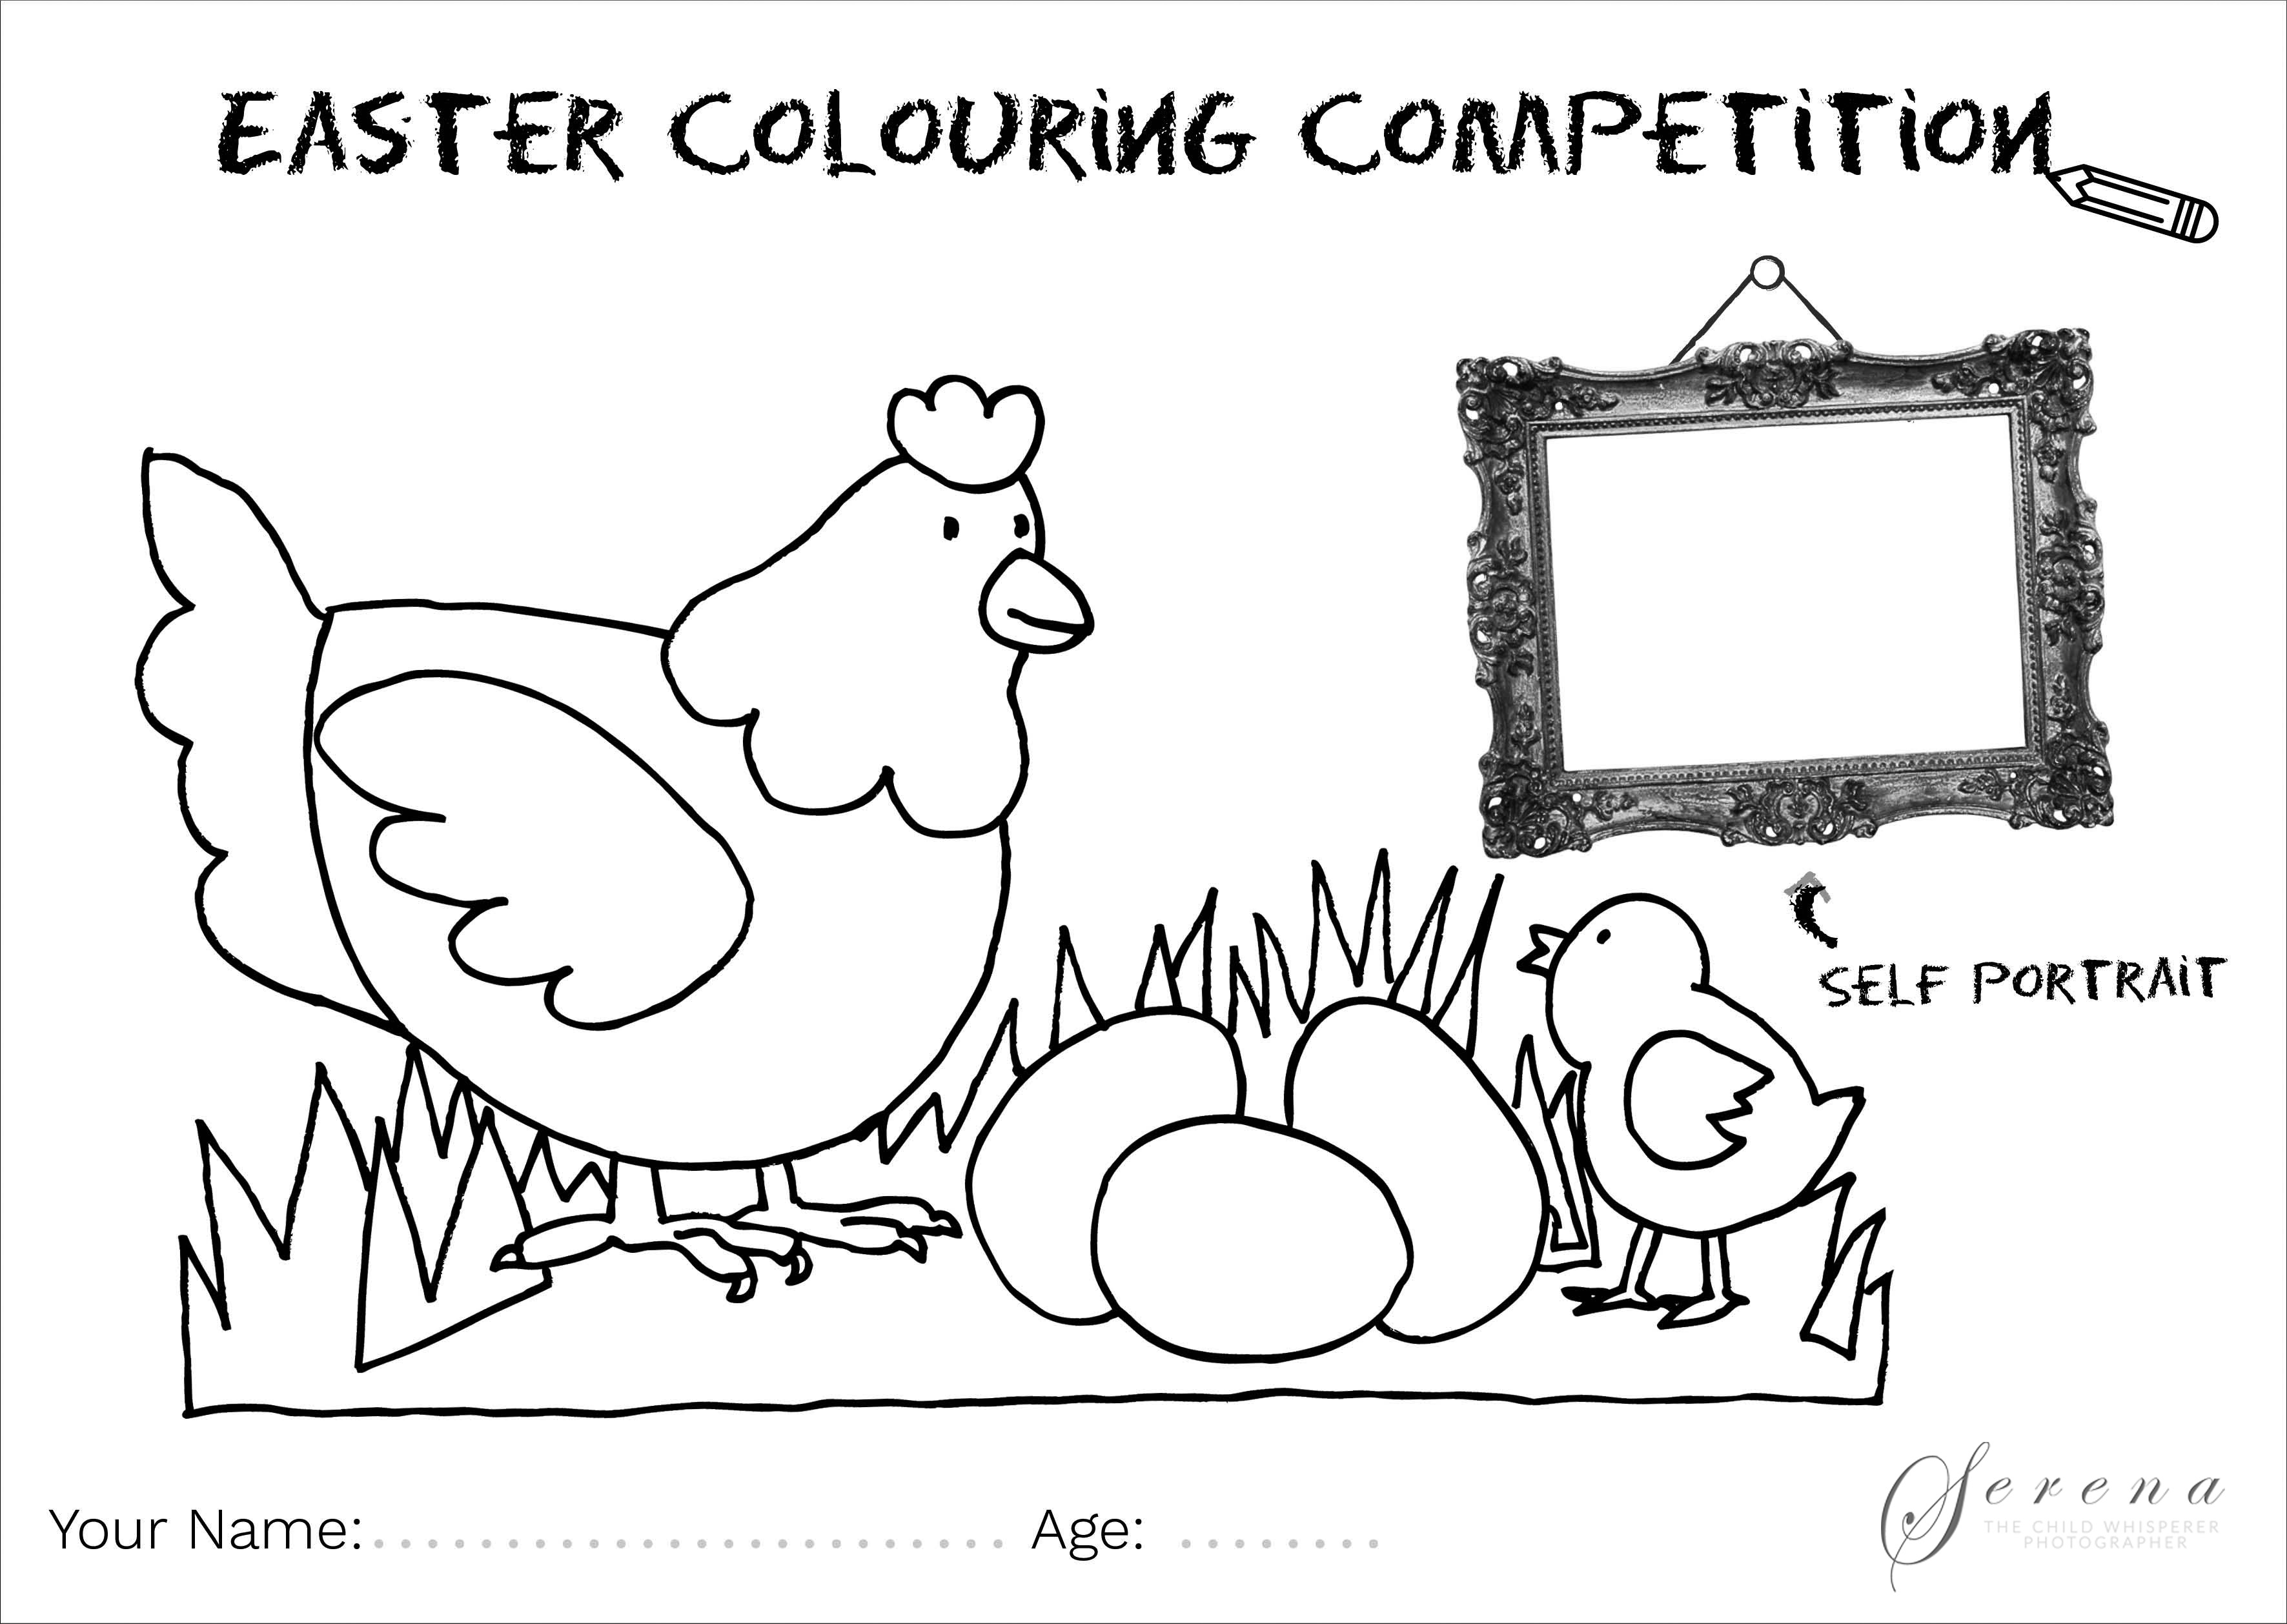 Colouring Competitions